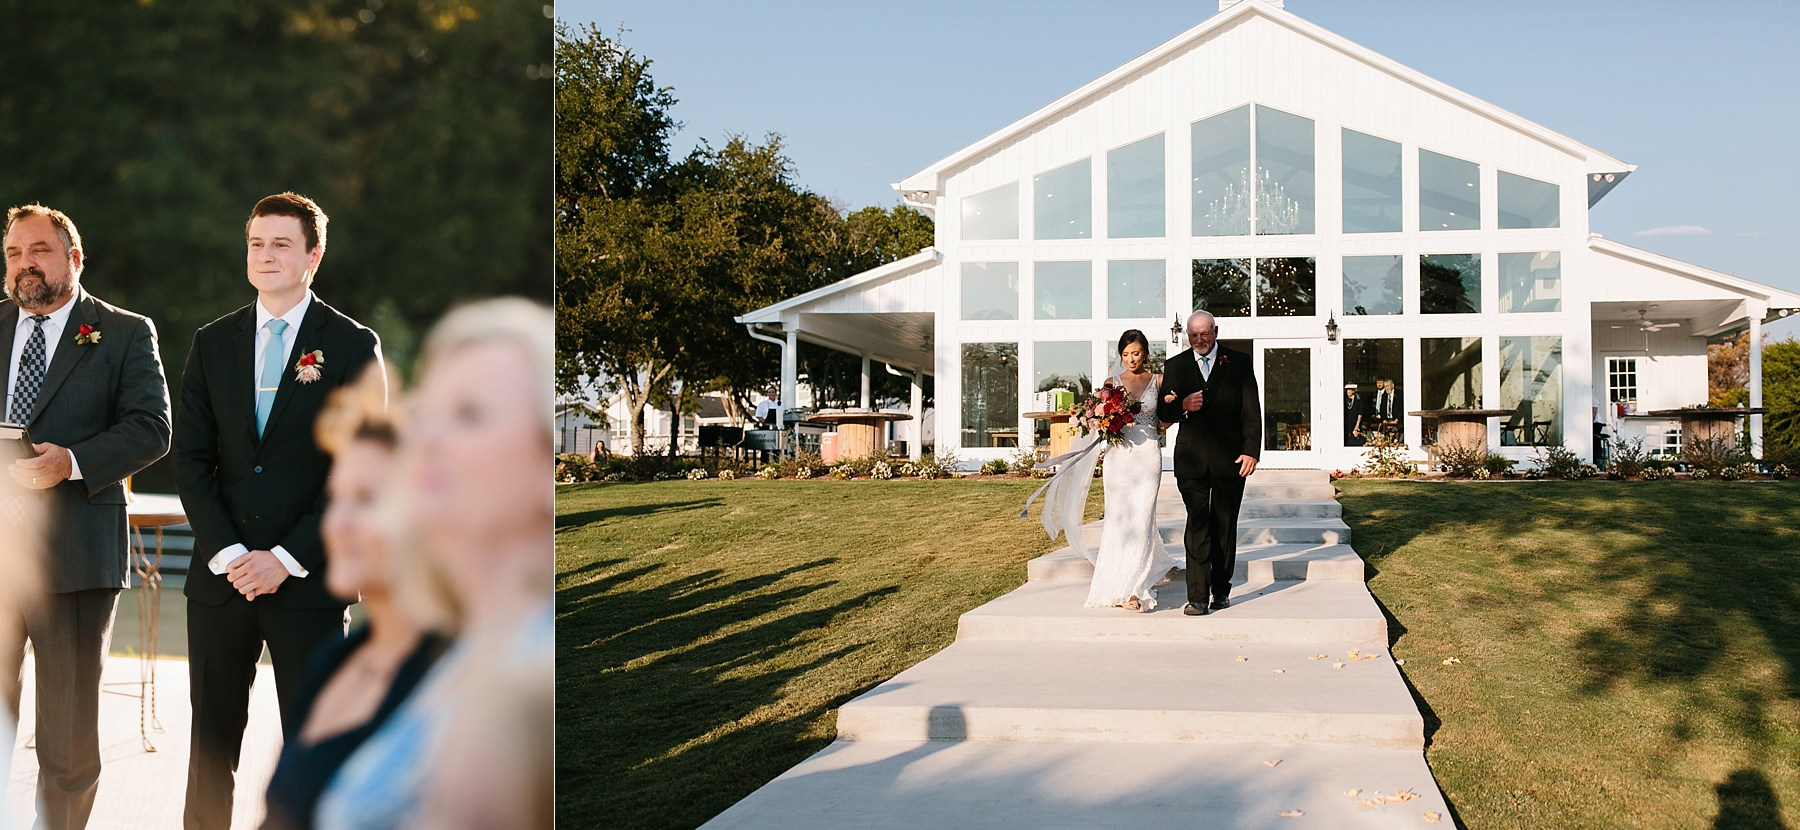 Lauren + Nathan _ a vibrant, wedding with a Navy, Red, and Duck Egg Blue Pallete at Firefly Gardens by North Texas Wedding Photographer Rachel Meagan Photography _ 068